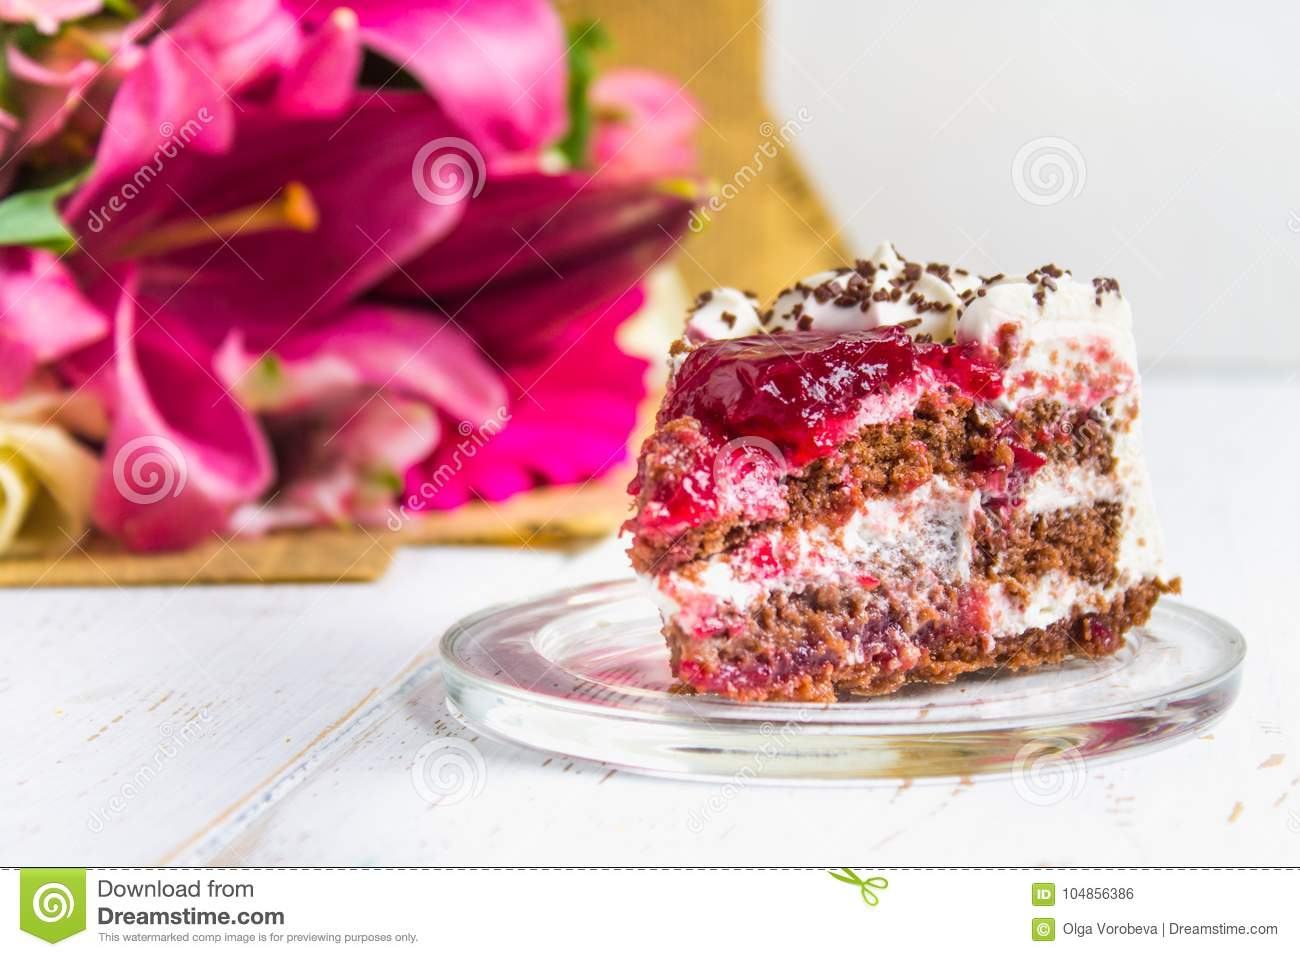 A piece of cake and a bouquet of flowers on a white wooden table a piece of cake and a bouquet of flowers on a white wooden table celebrating the birthday a gift izmirmasajfo